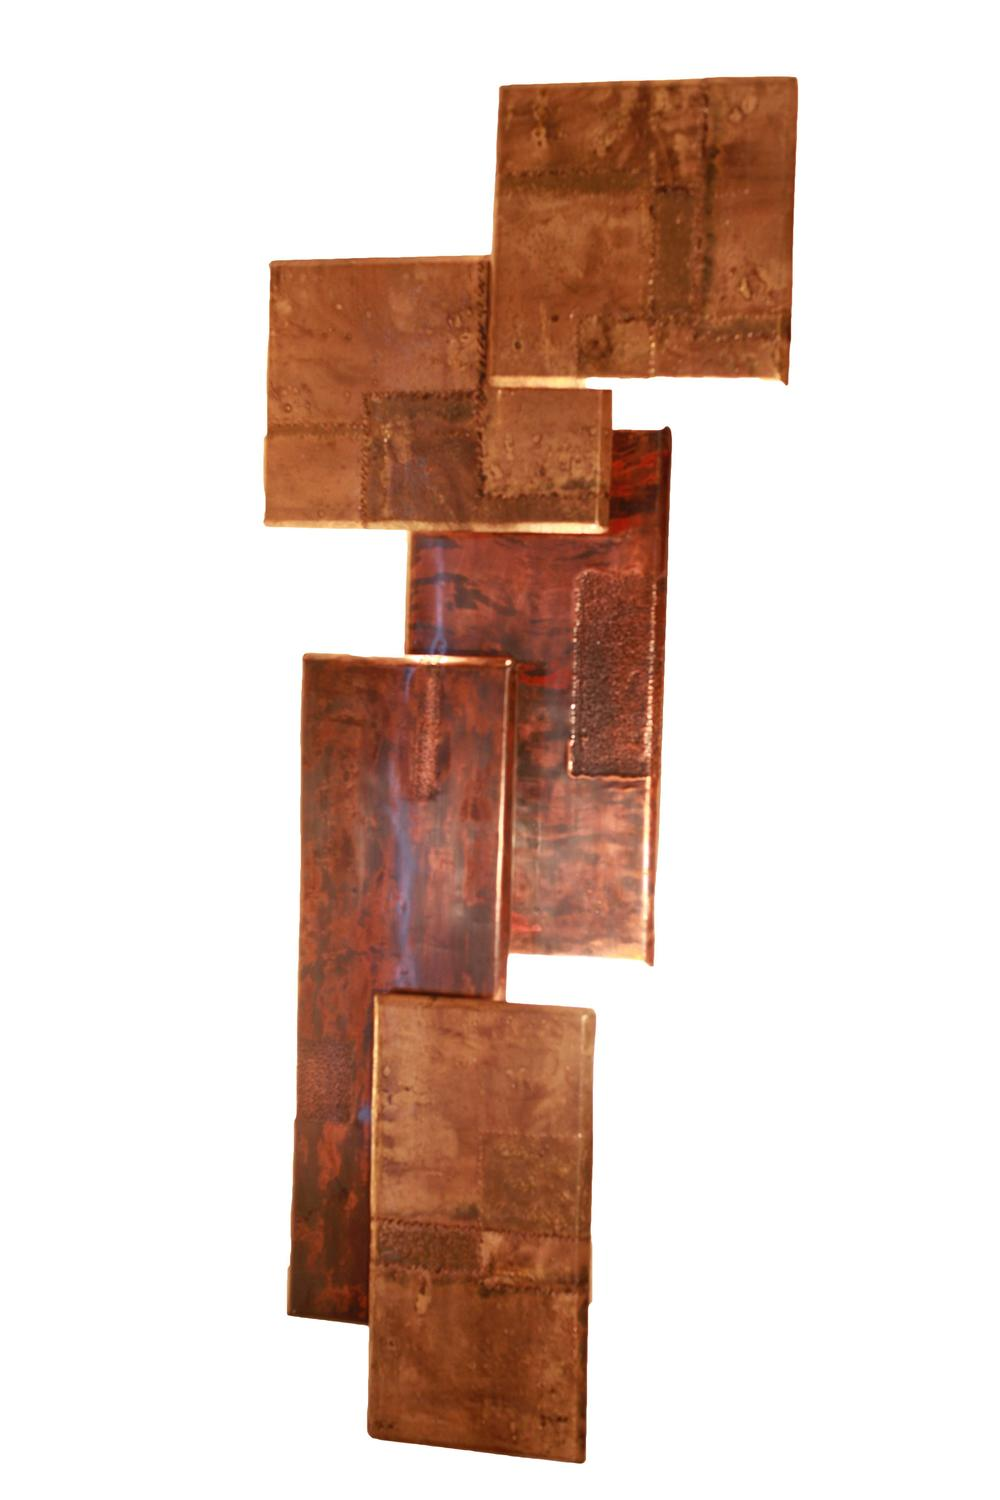 Very Large Brutalist Paul Evans Style Wall Sconces by Studio Artist Zsolt Vudy at 1stdibs